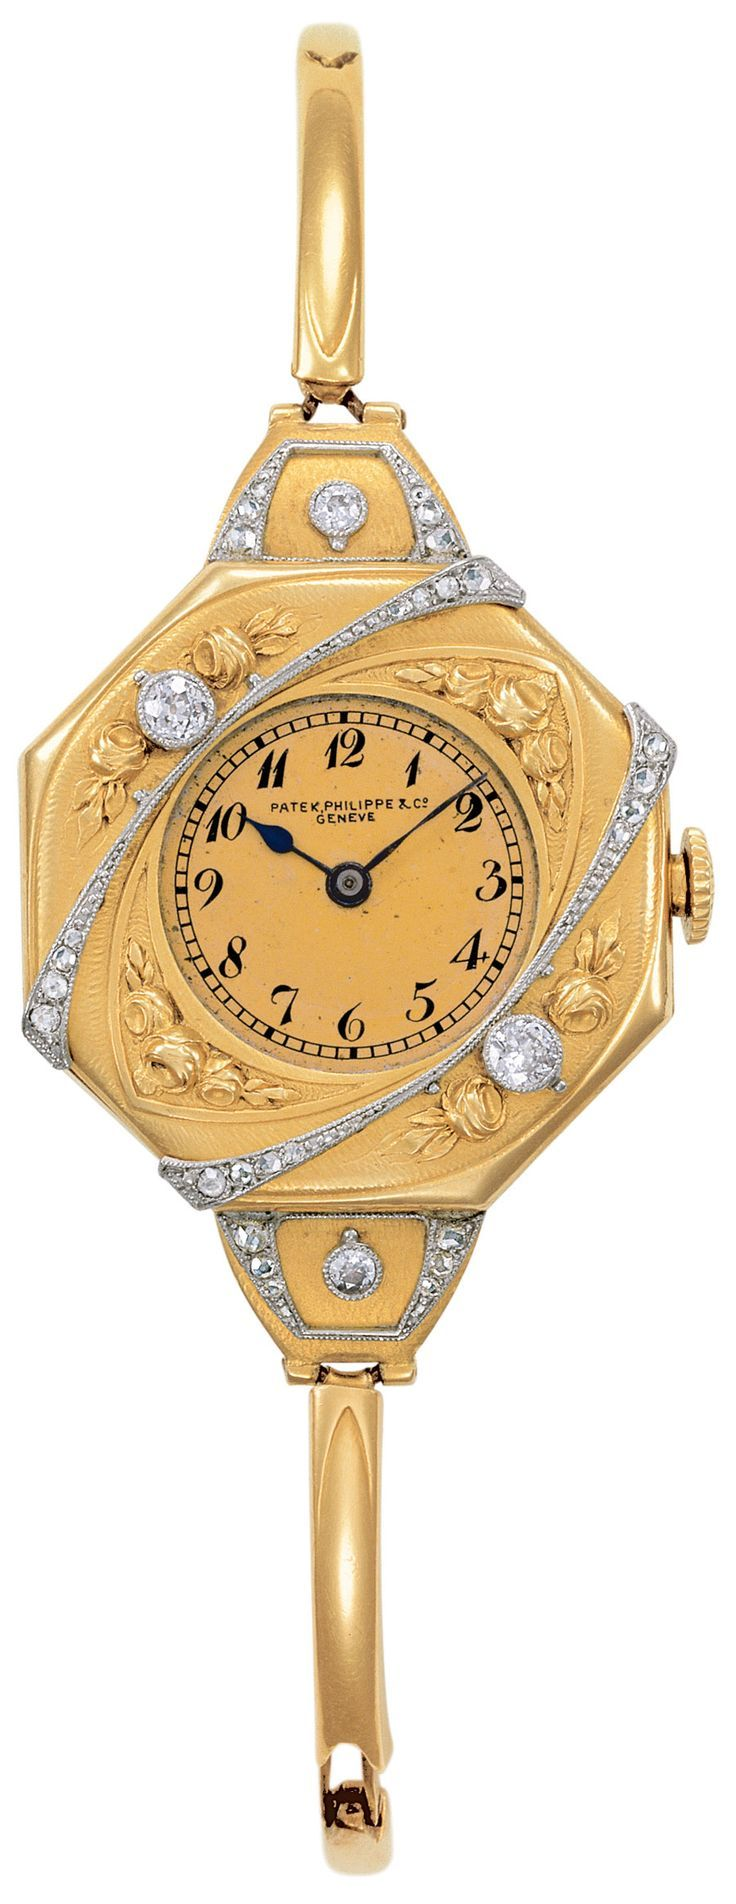 Wondrous womenus watch from patek philippe in a yellow and white